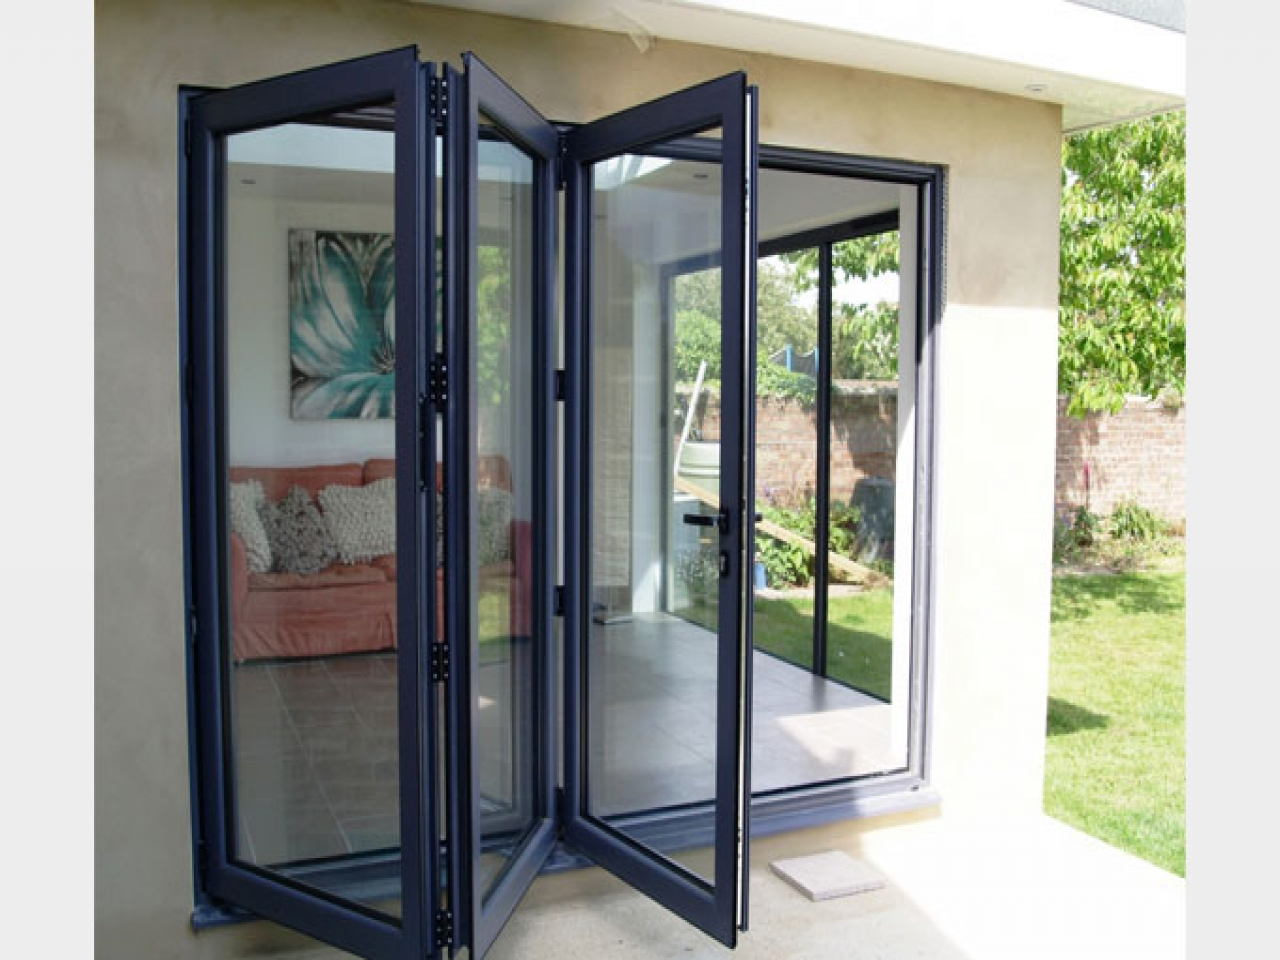 residential windows doors south coast windows doors On collapsible sliding doors